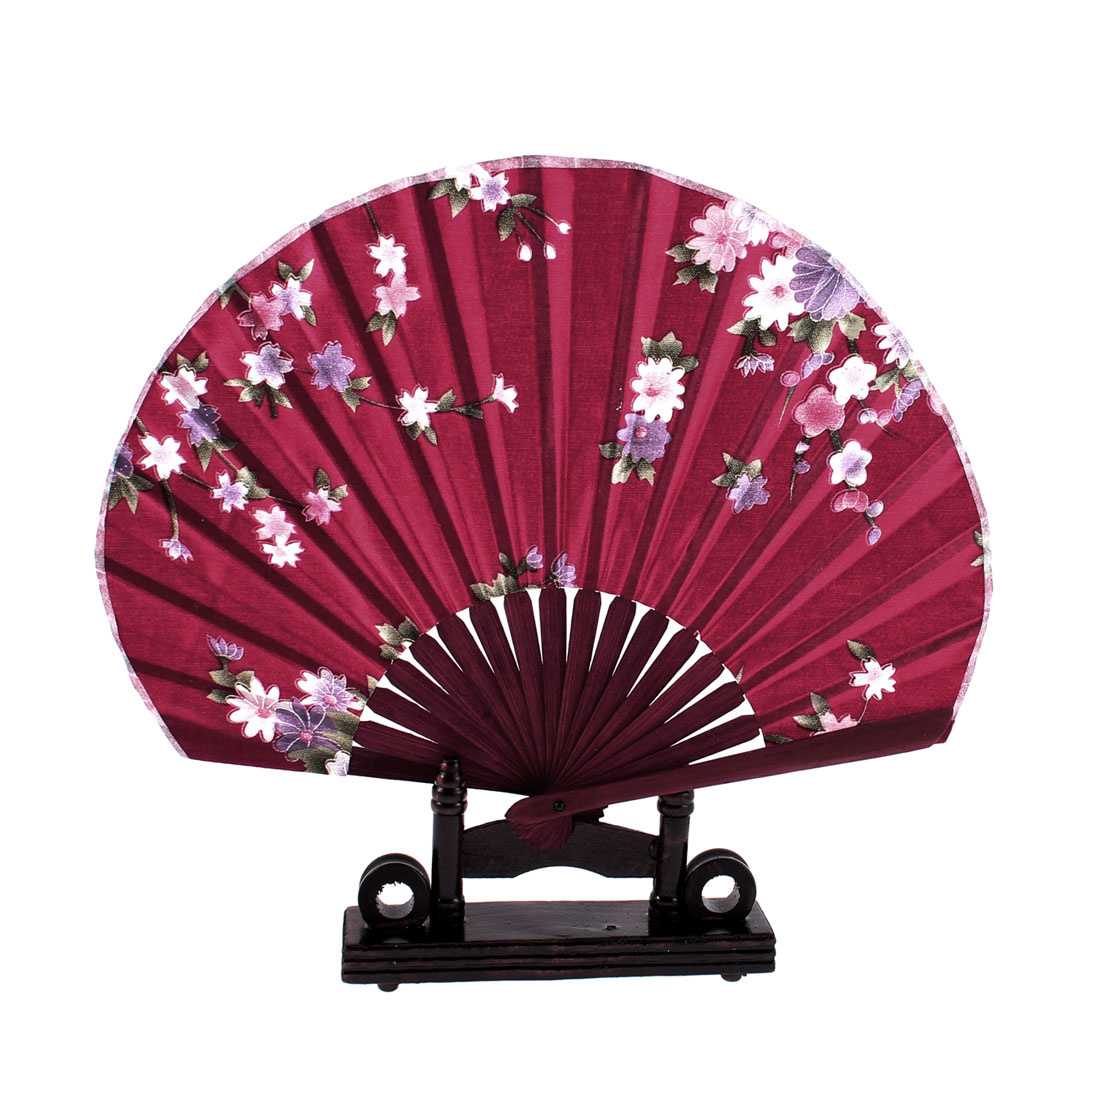 Daisy Flower Design Burgundy Chinese Fabric Folding Hand Fan w Display Holder